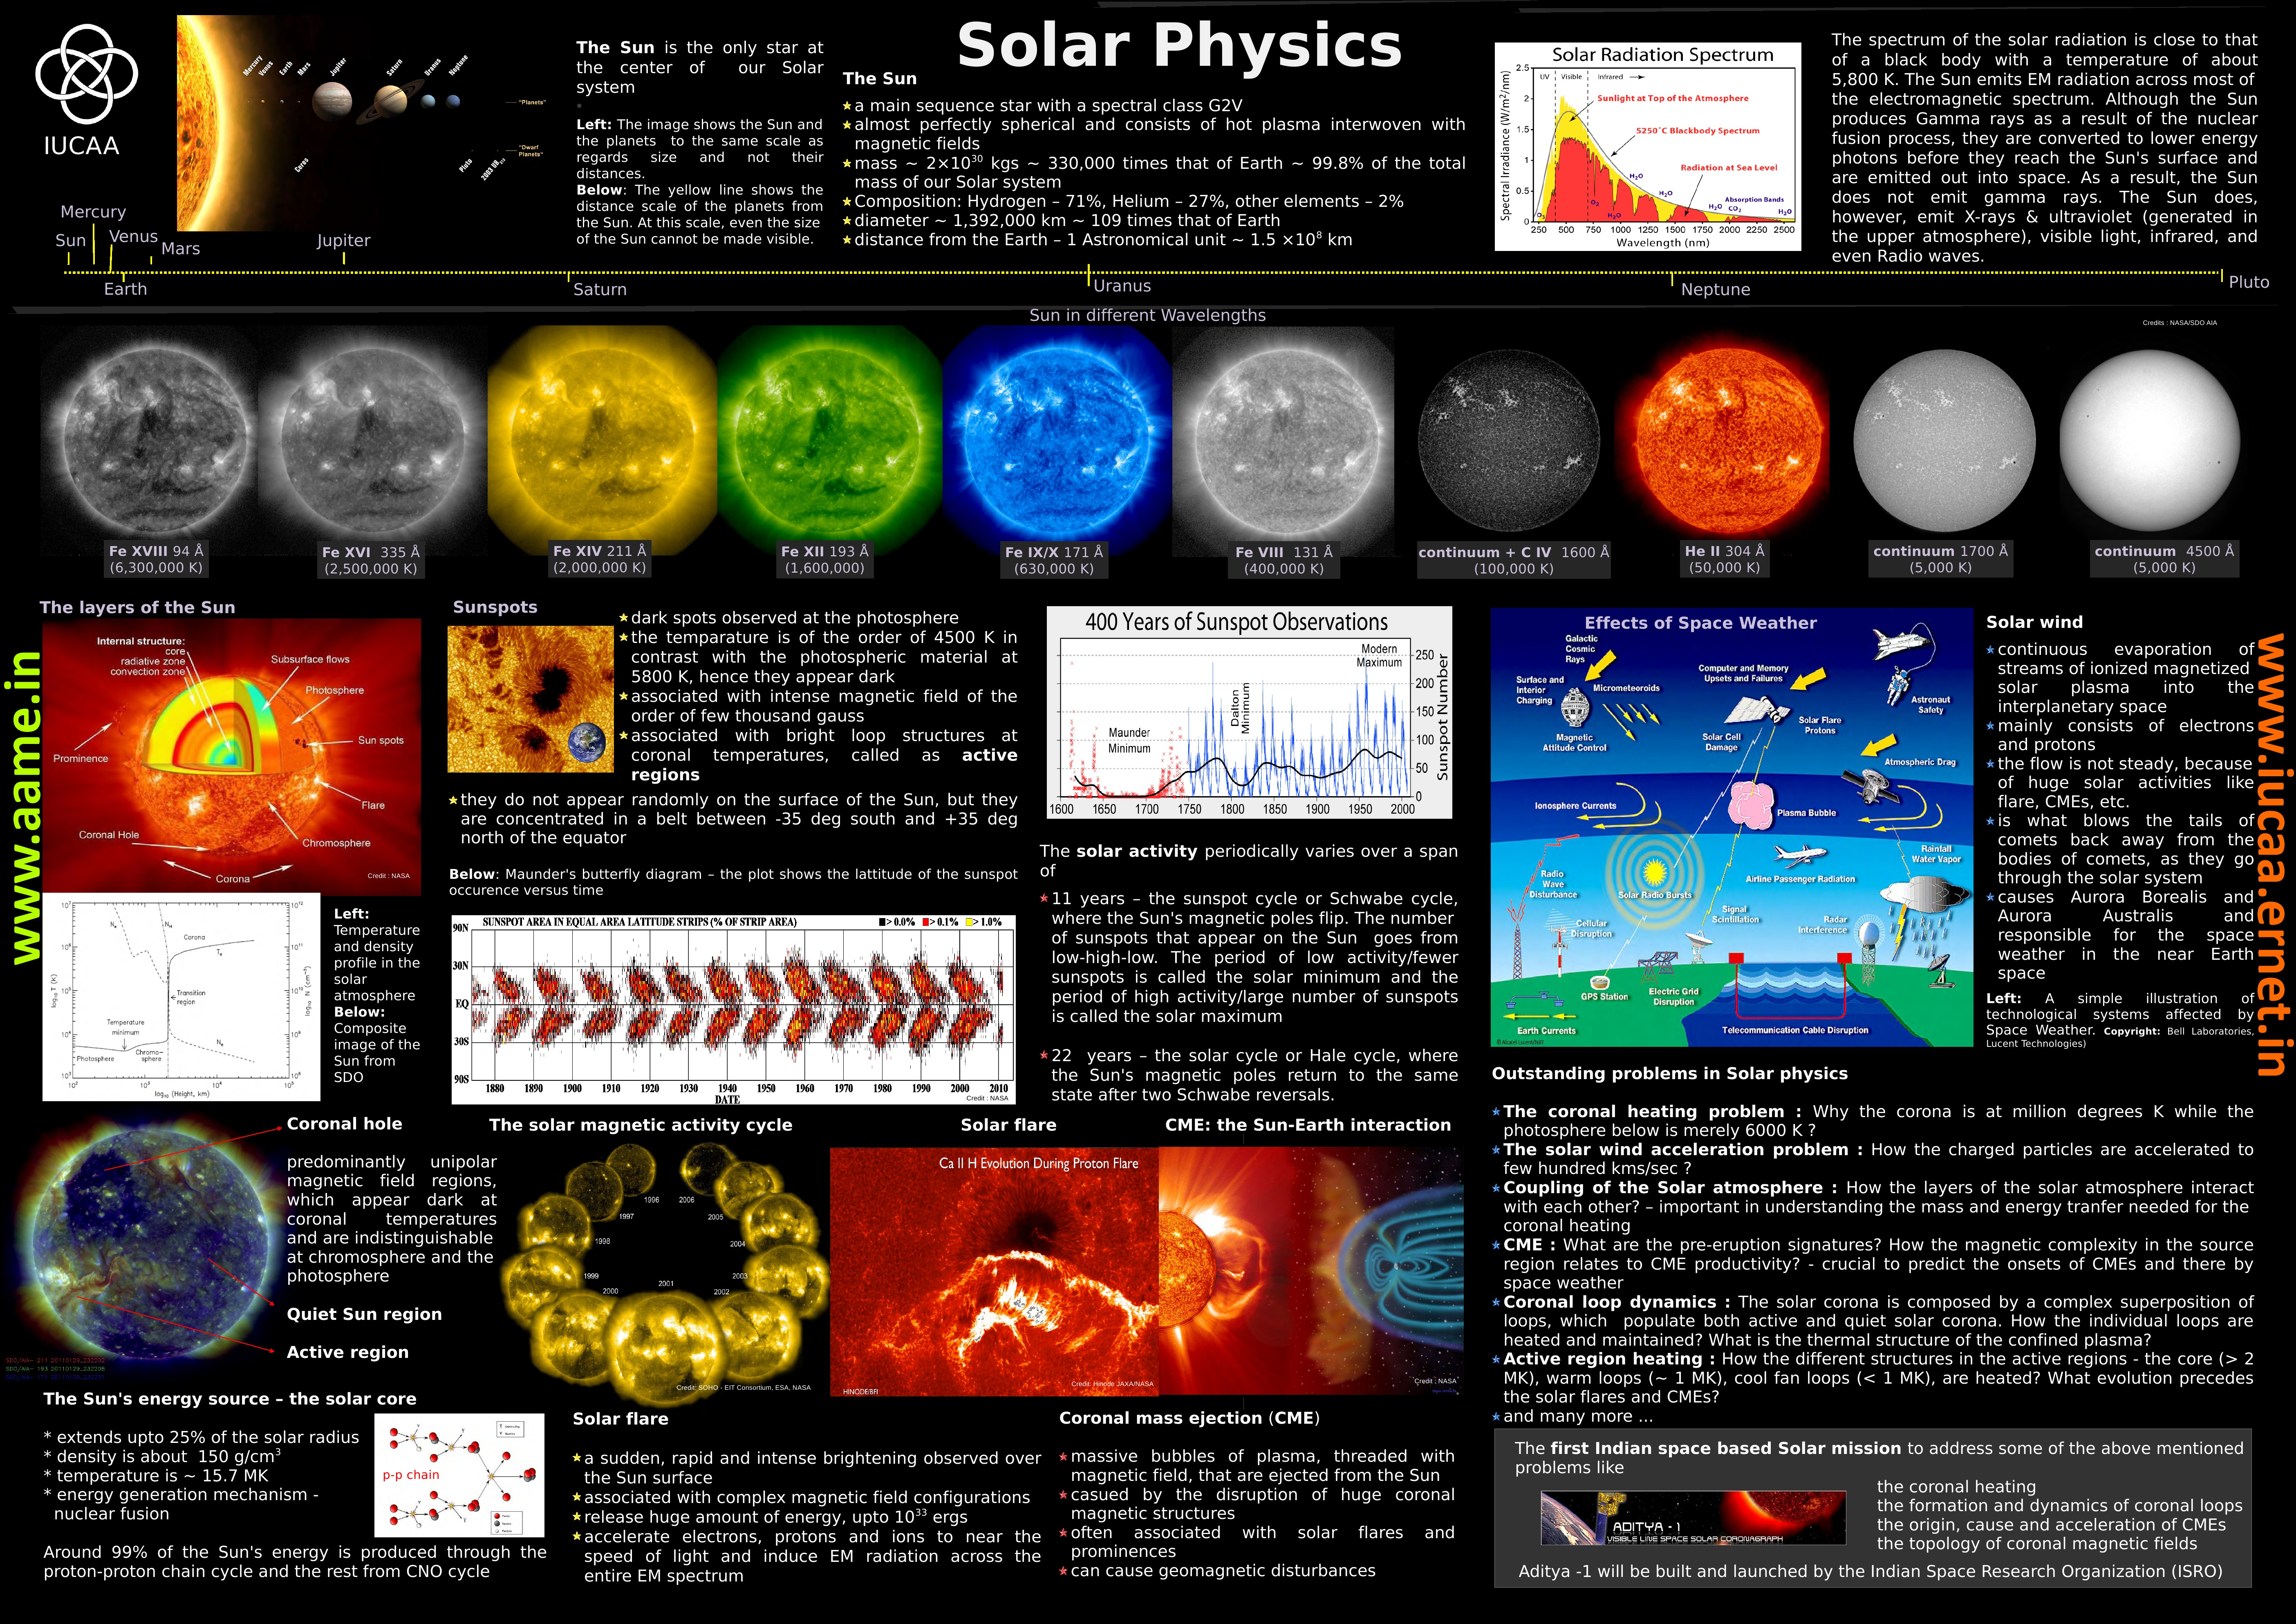 an analysis of the nuclear fusion concept in the solar system